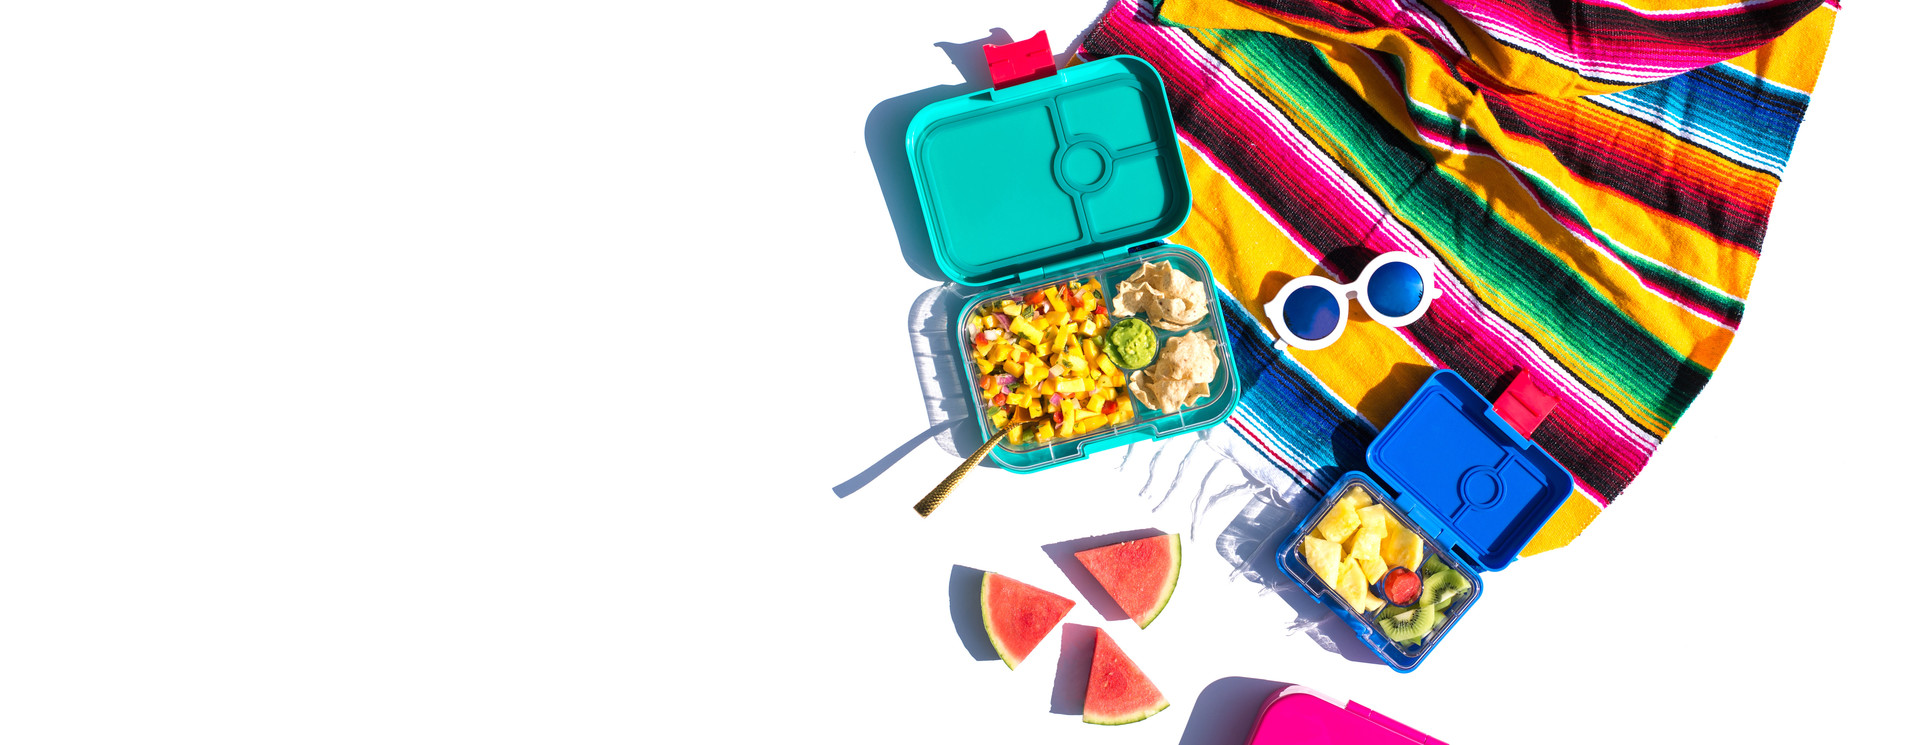 Separate parts for Yumbox